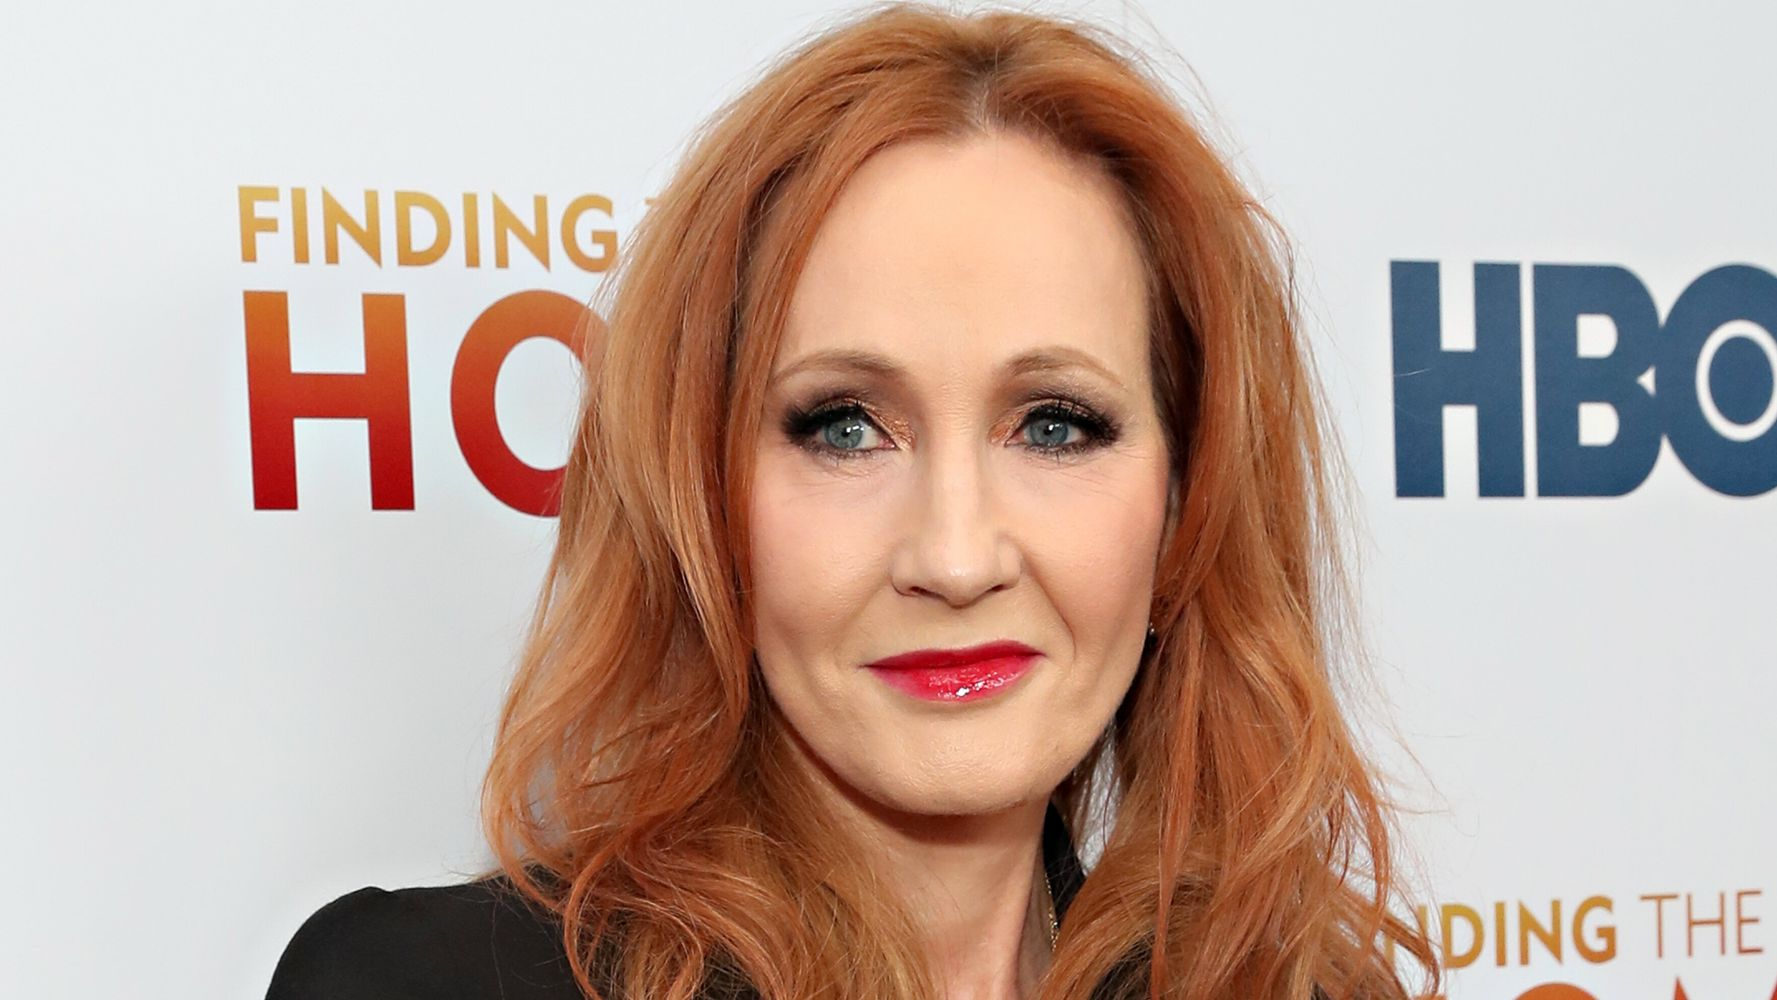 J.K. Rowling's New Book Is Reportedly About A Man Who Wears Dresses To Murder Women